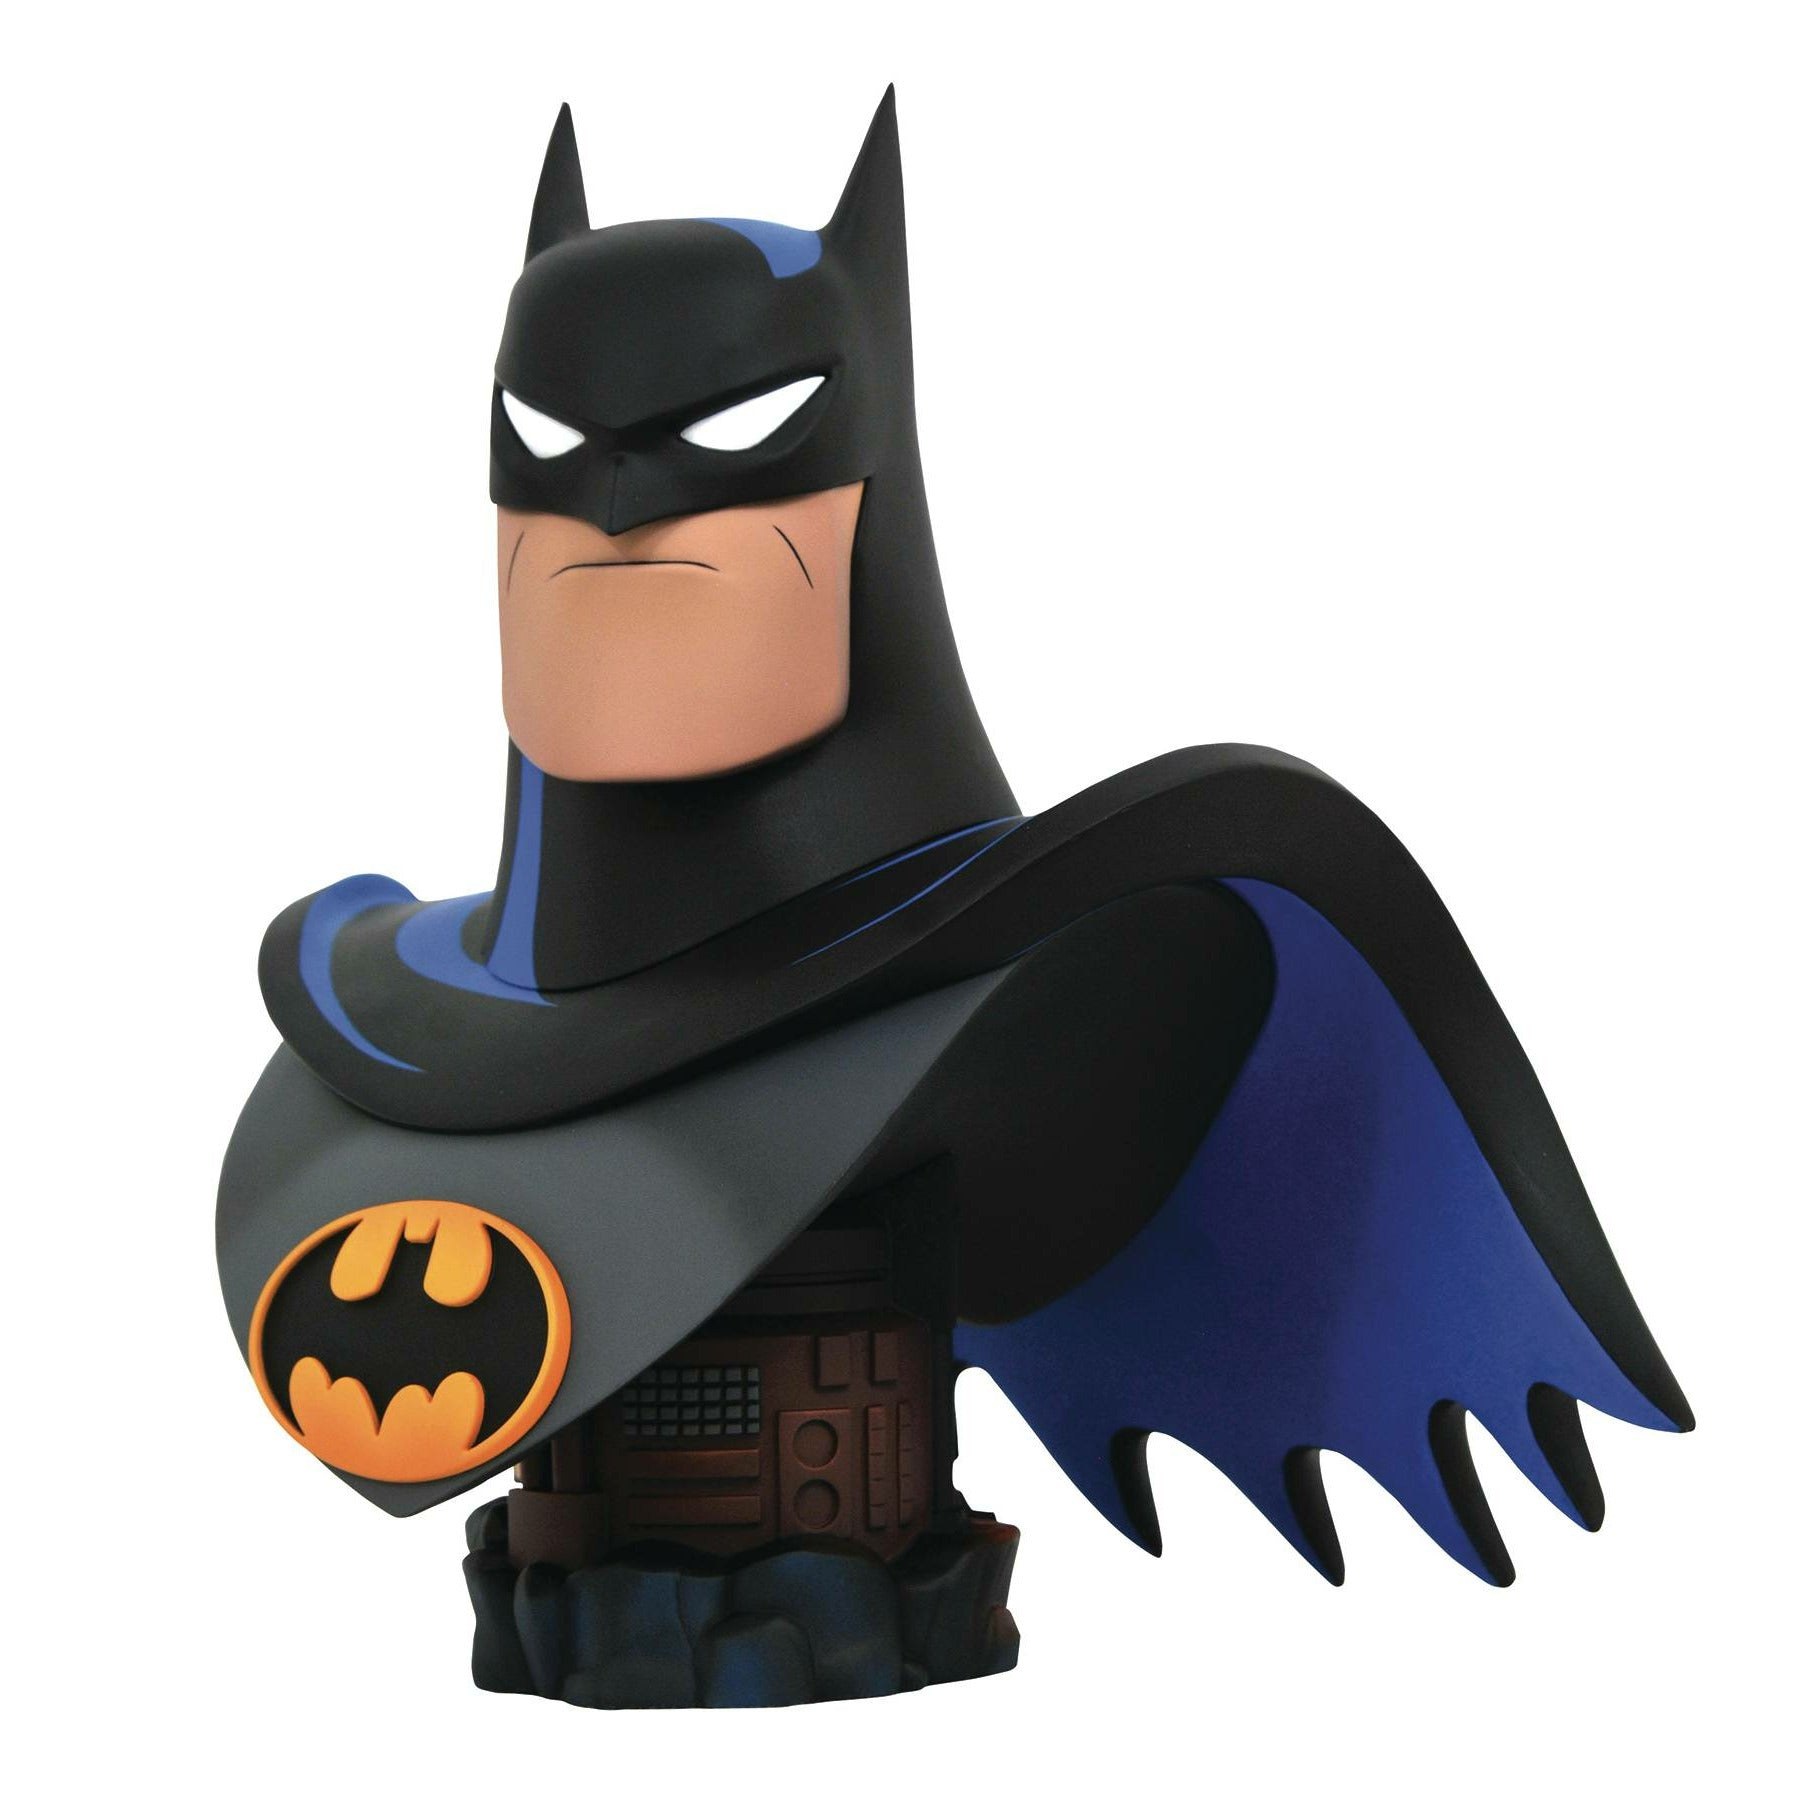 Batman Tas Legends In 3d Batman 1/2 Scale Bust